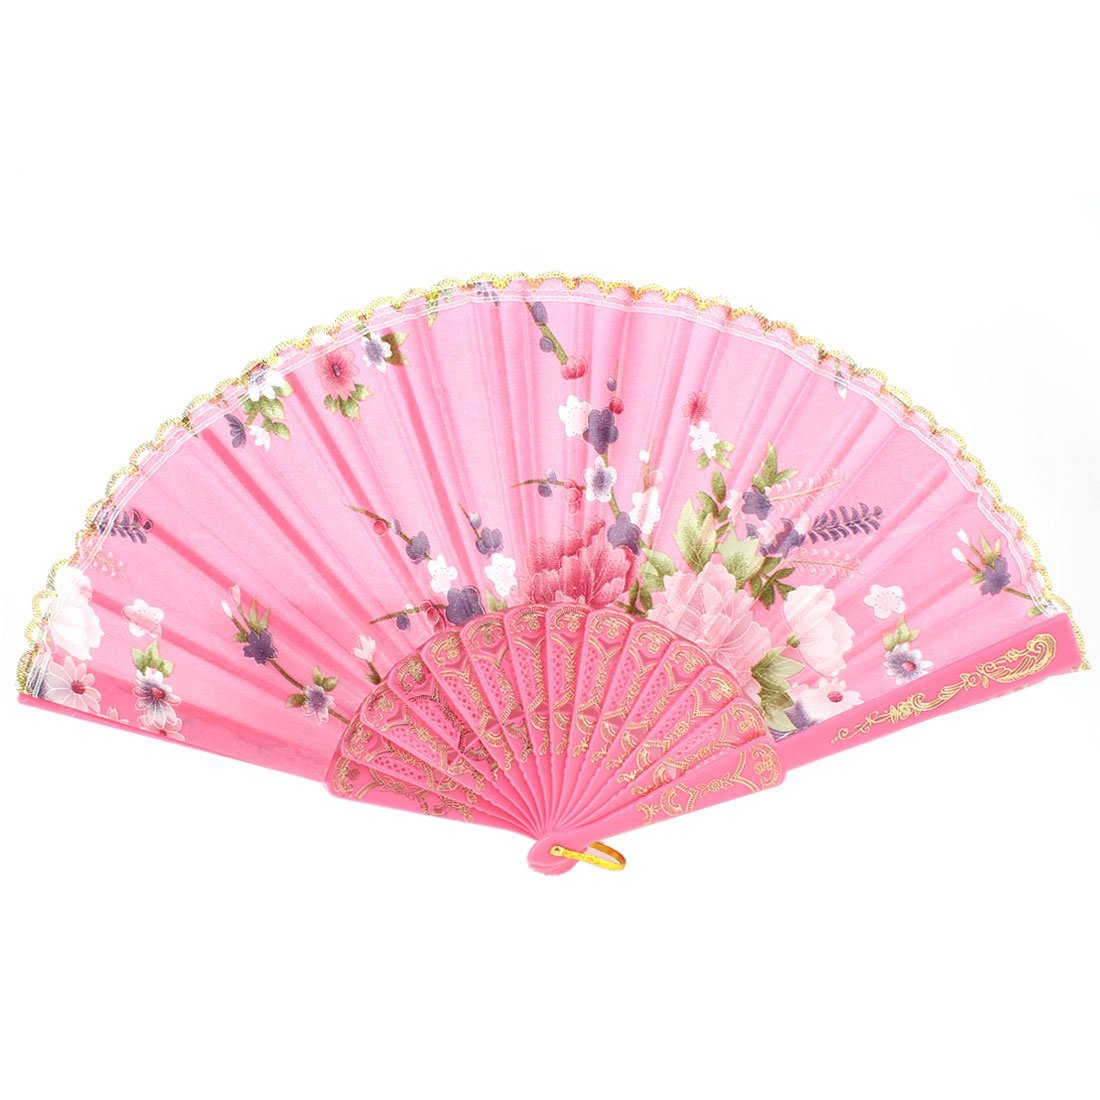 uxcell Plastic Ribs Polyester Flower Printed Lace Decor Hand Fan Pink